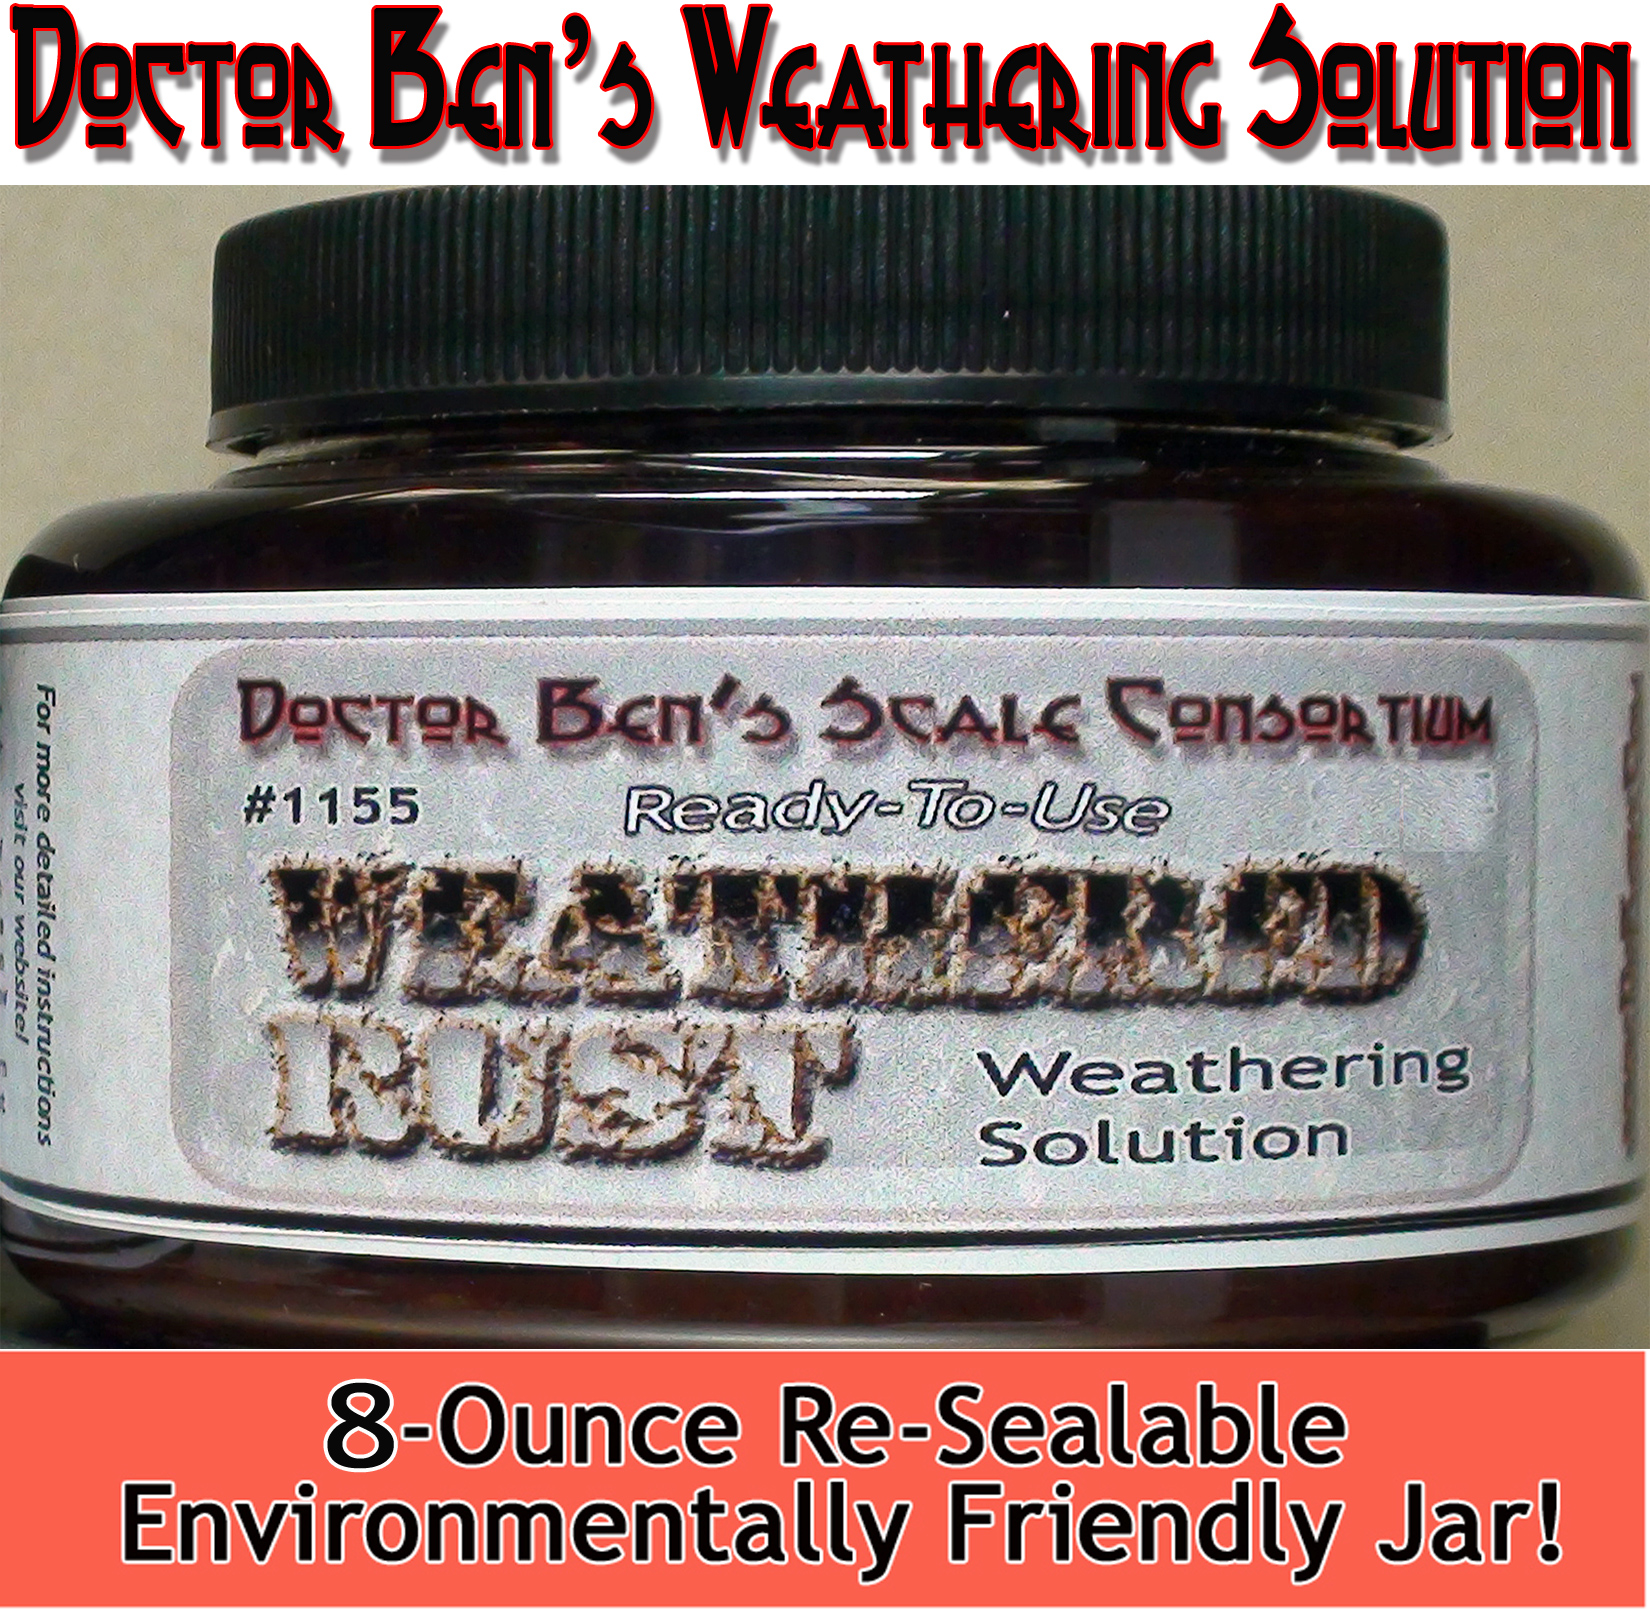 Weathered Rust Weathering Solution 8oz-Doctor Ben's Scale Consortium